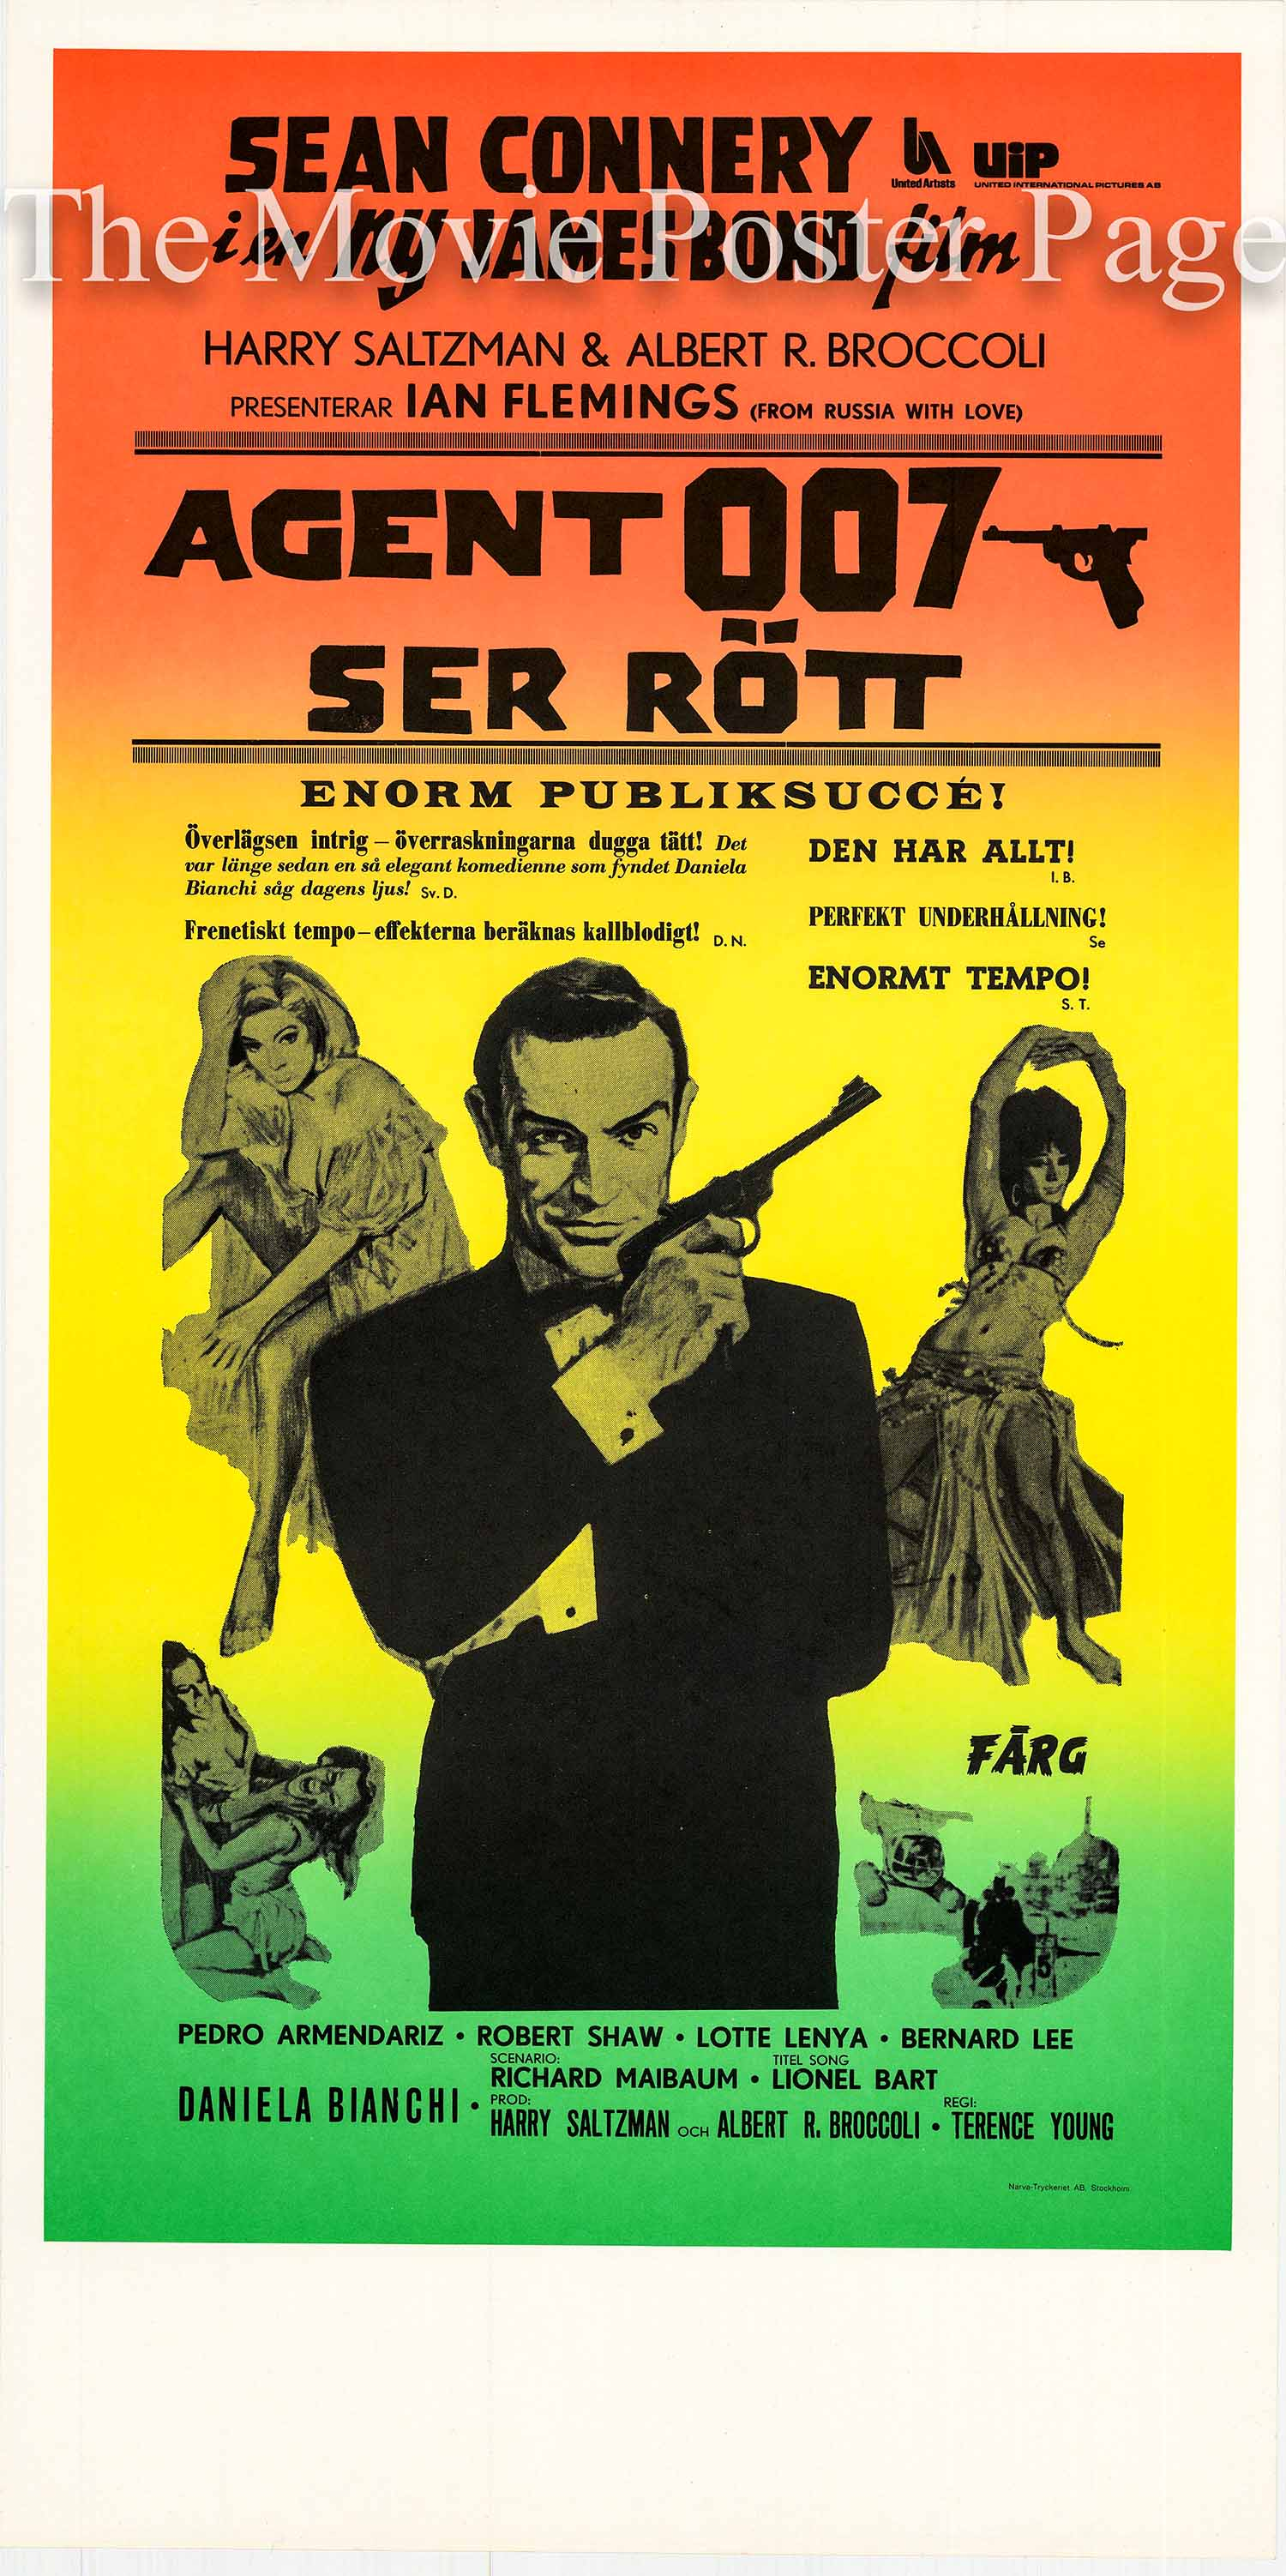 Pictured is a Swedish insert promotional poster for the 1963 Terence Young film From Russia with Love starring Sean Connery as James Bond.